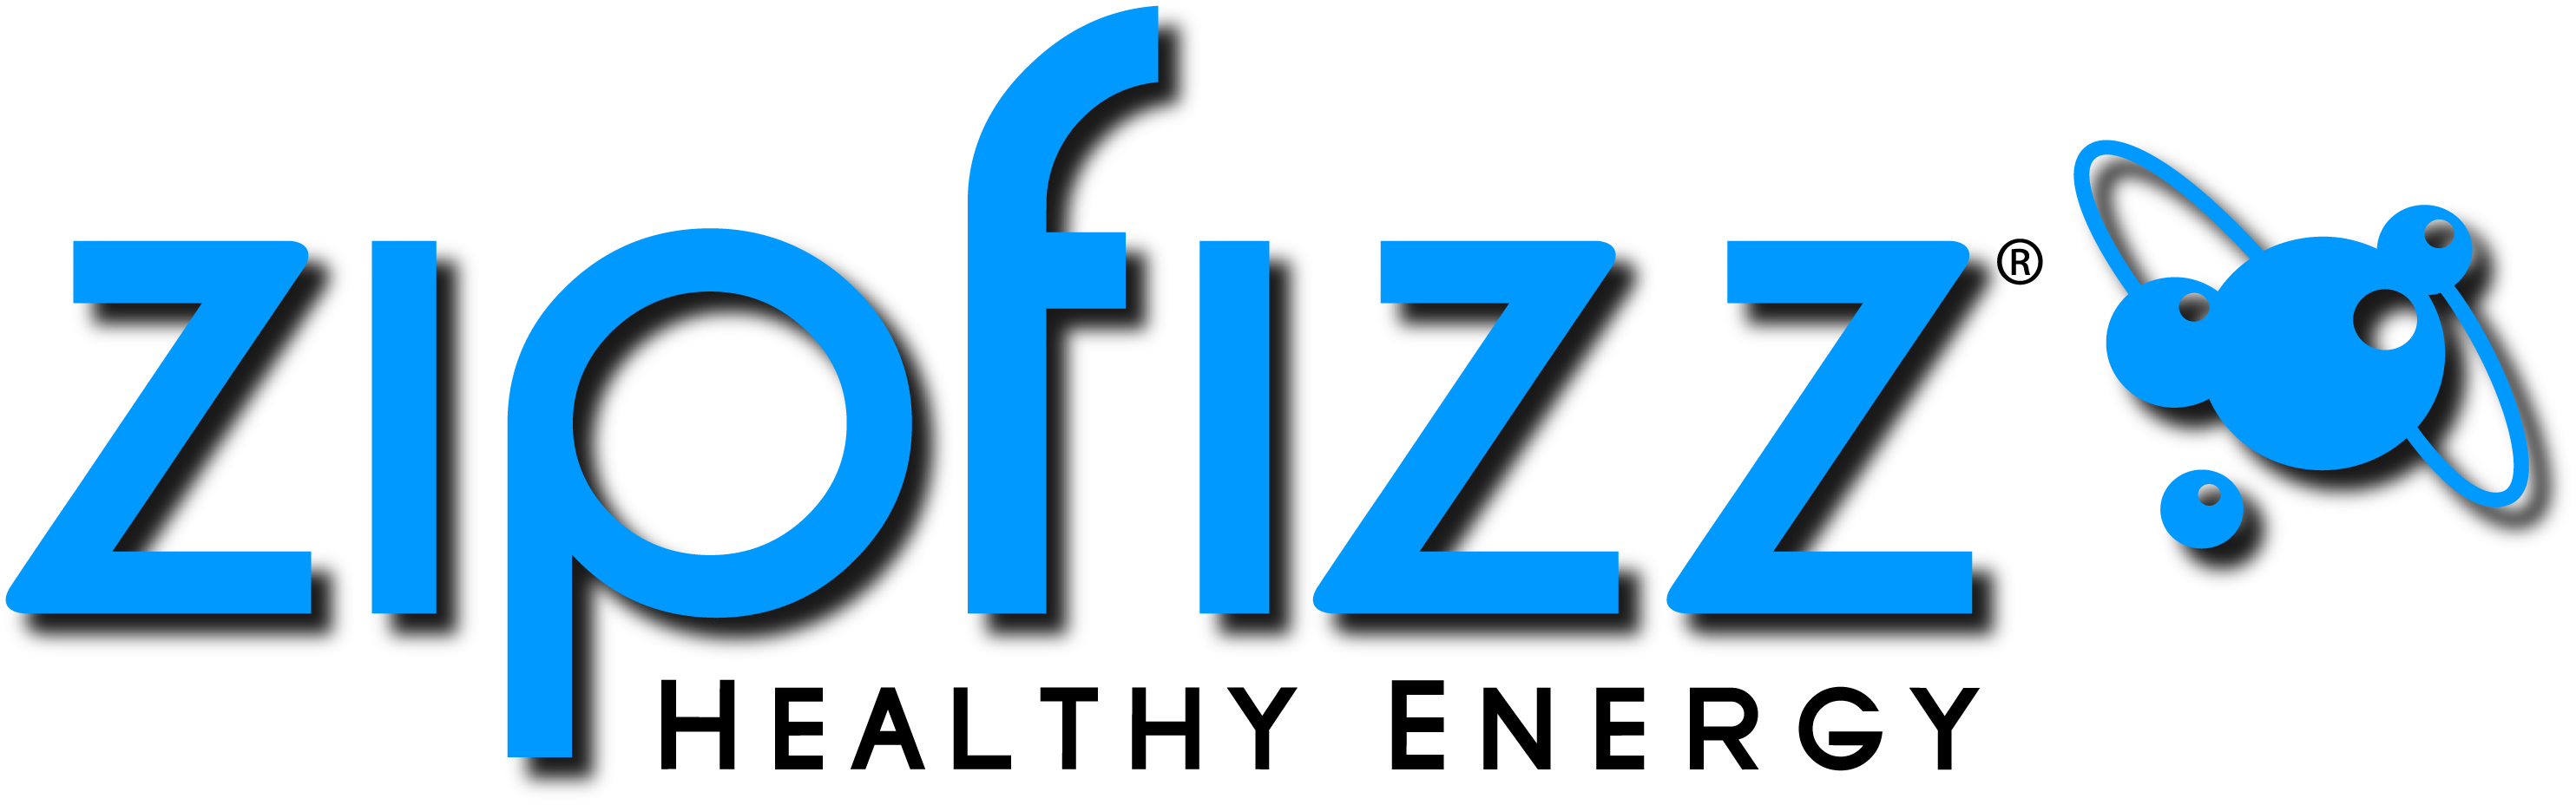 Zipfizz's Media Campaign Has the Corporation in Line to Sell